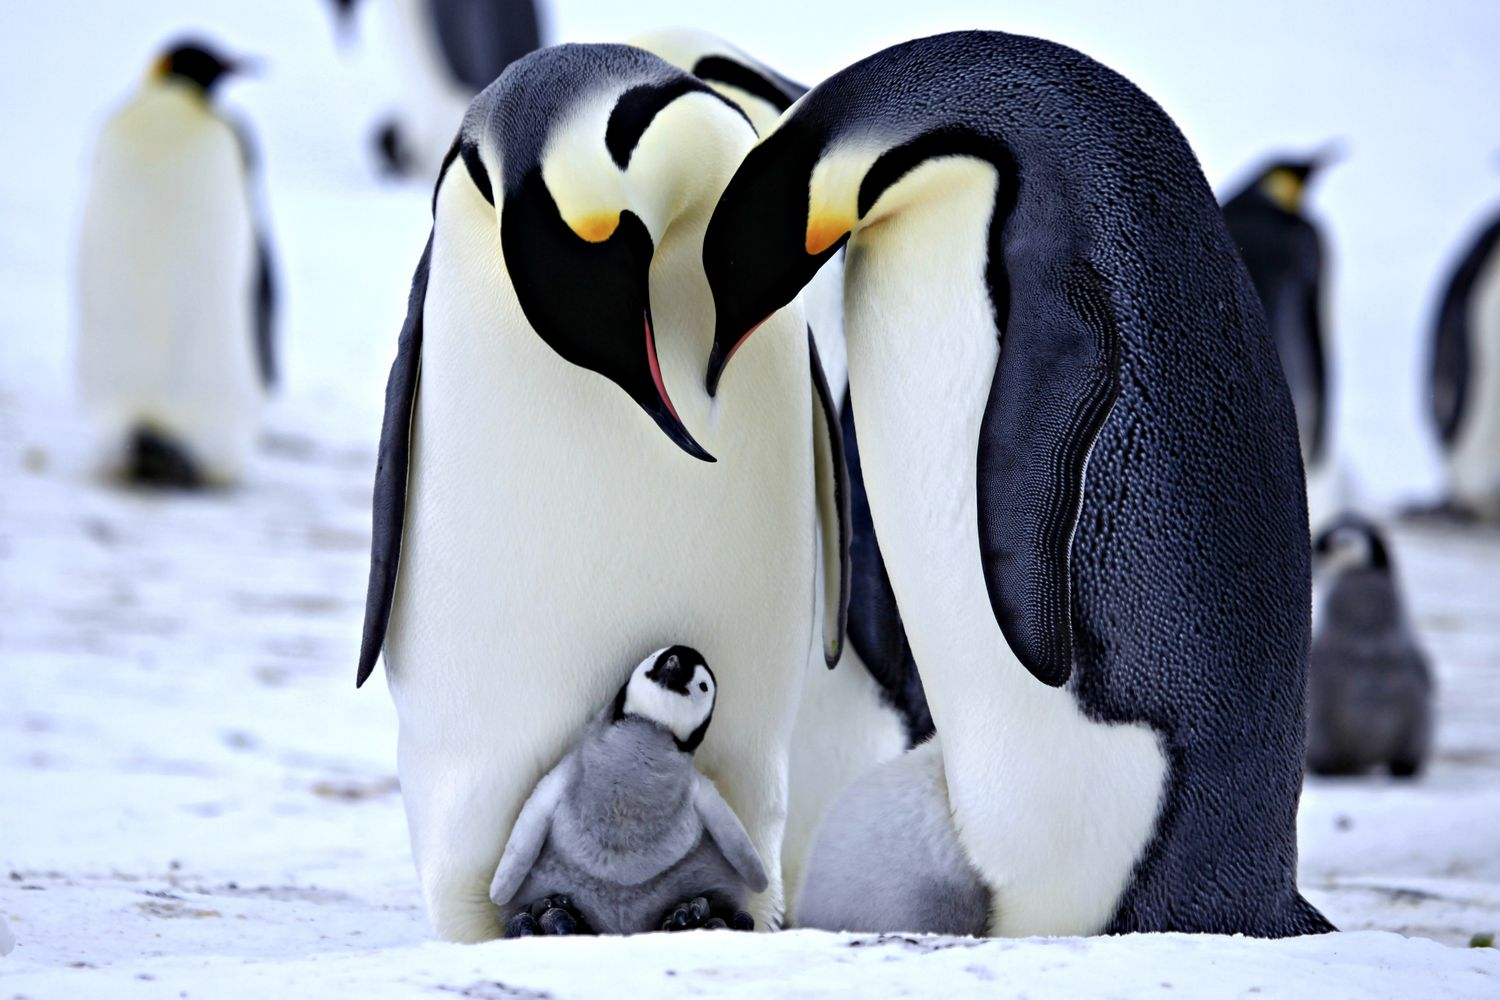 Penguins Wallpapers F483V96 16883 Kb WallpapersExpertcom 1500x1000